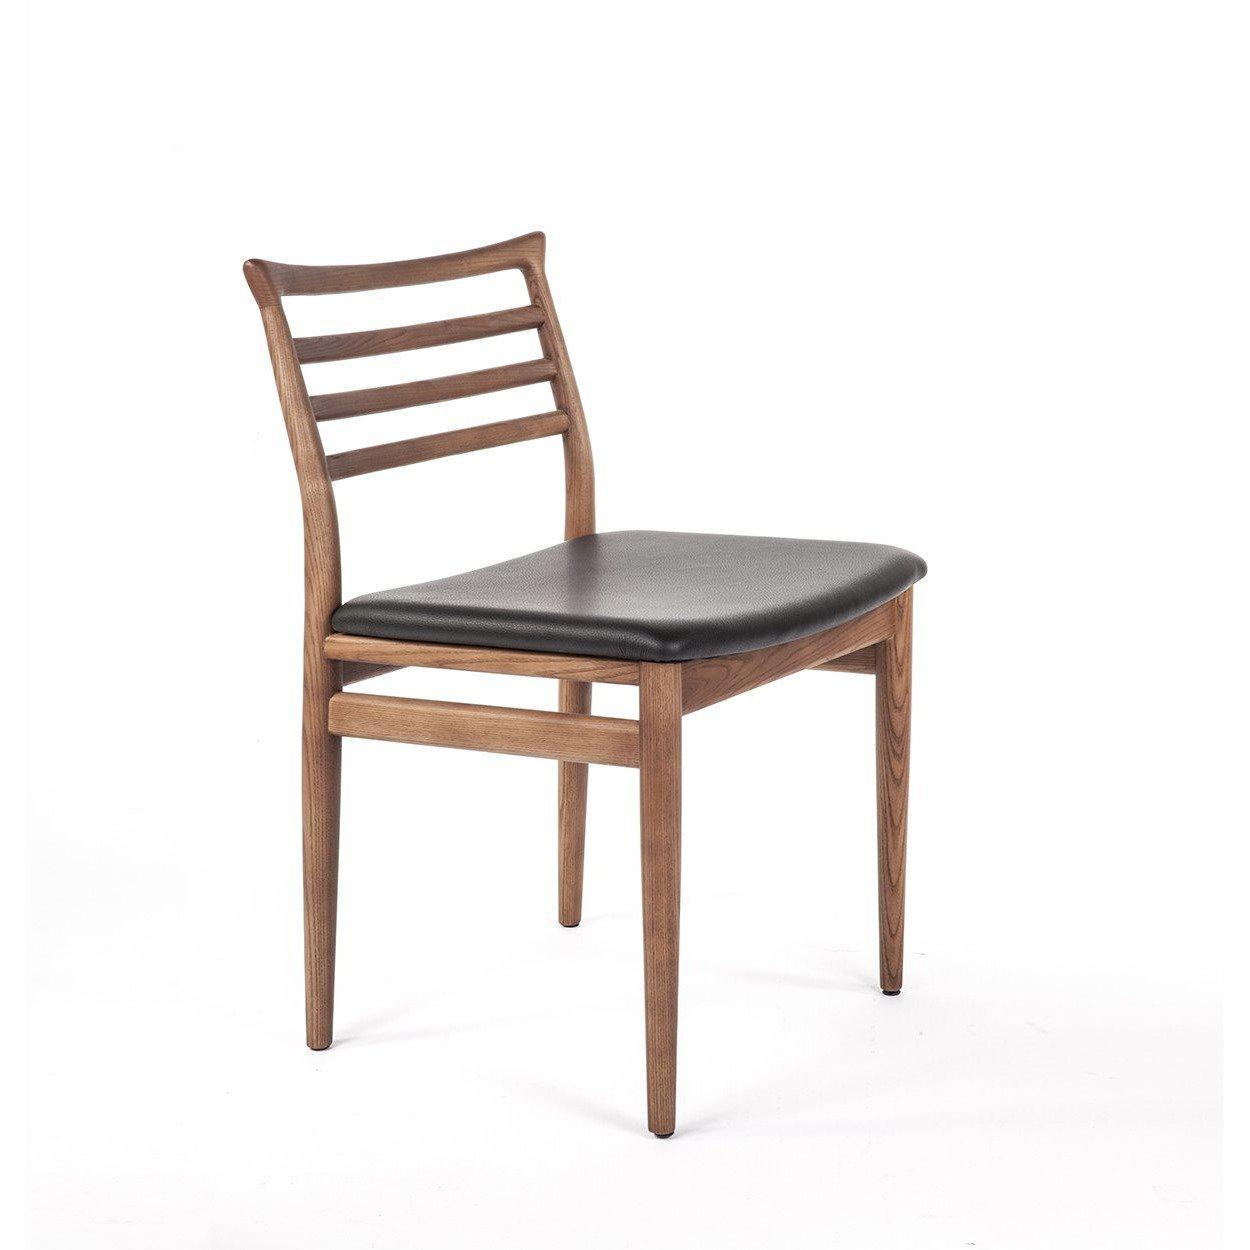 [FEC9039] The MCM Moller Dining Chair SALE